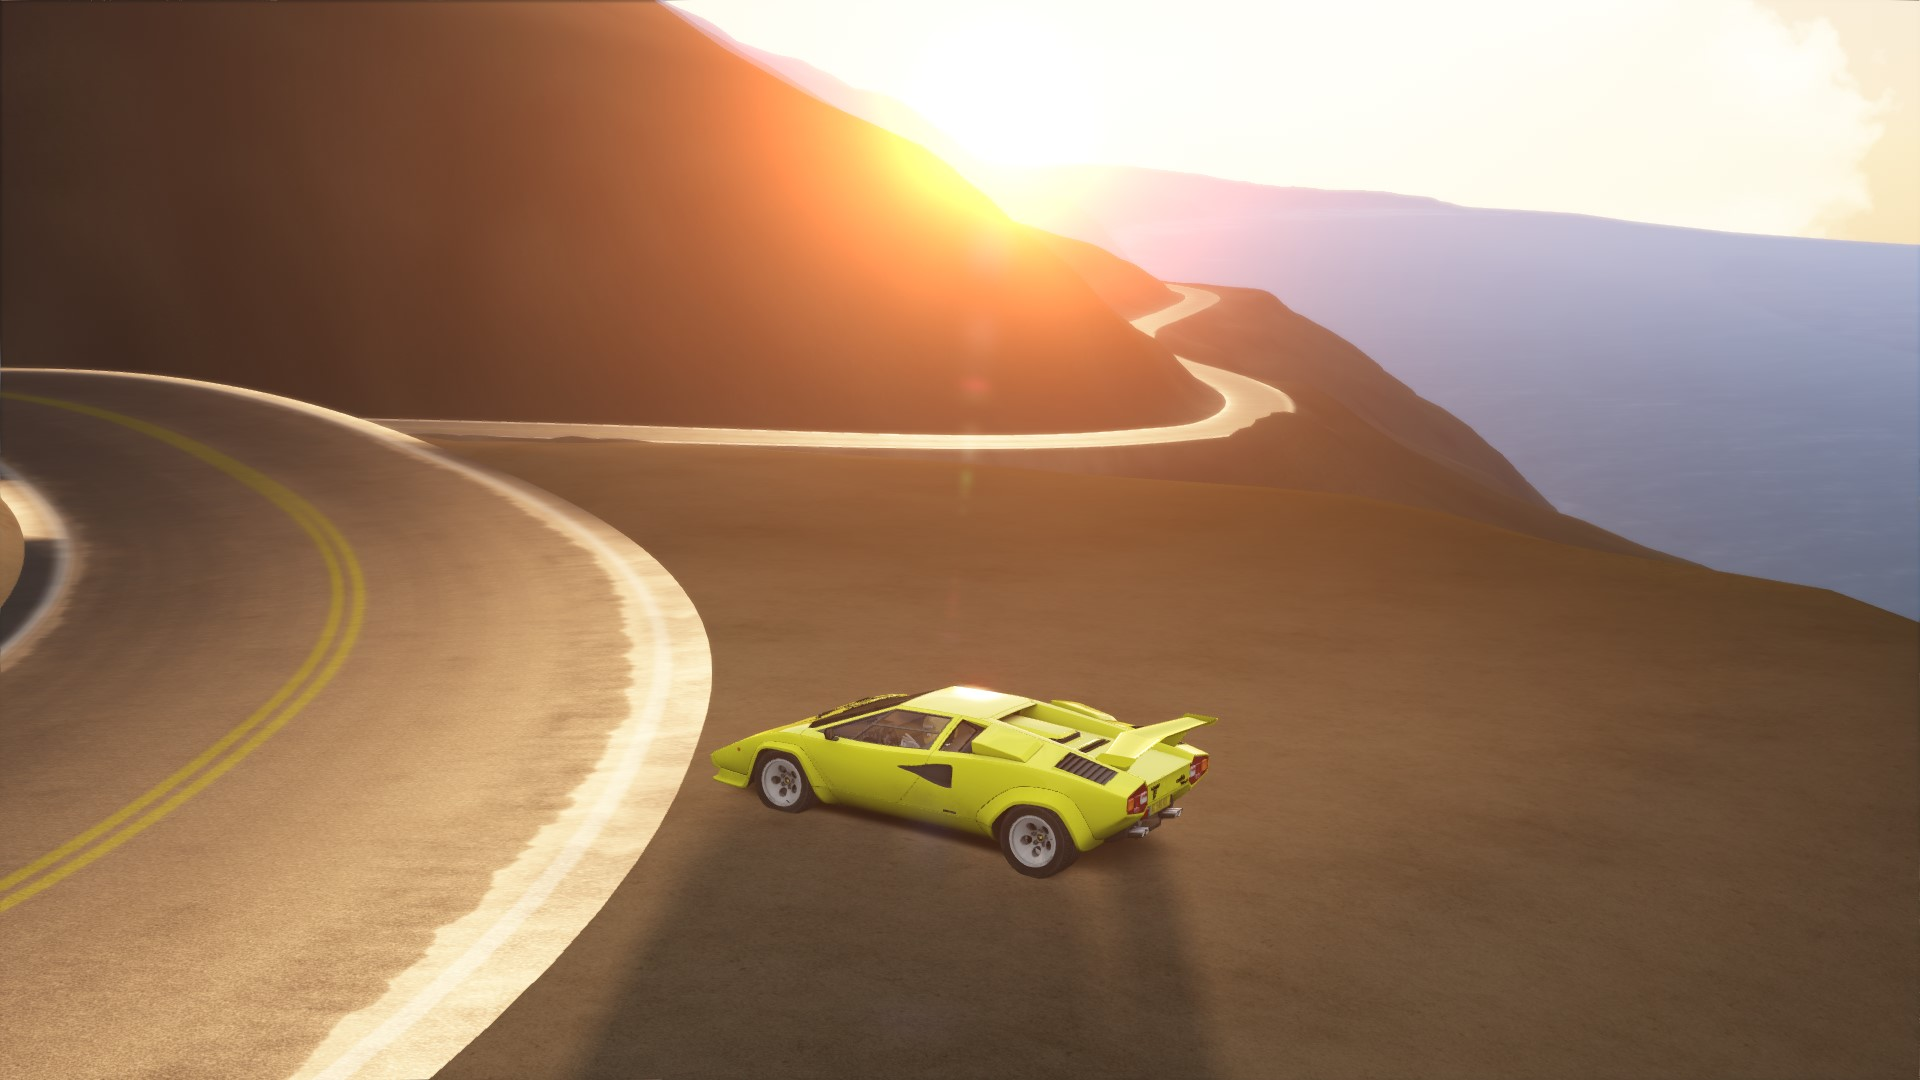 Pacific_Coast_Countach_Sunset.jpg